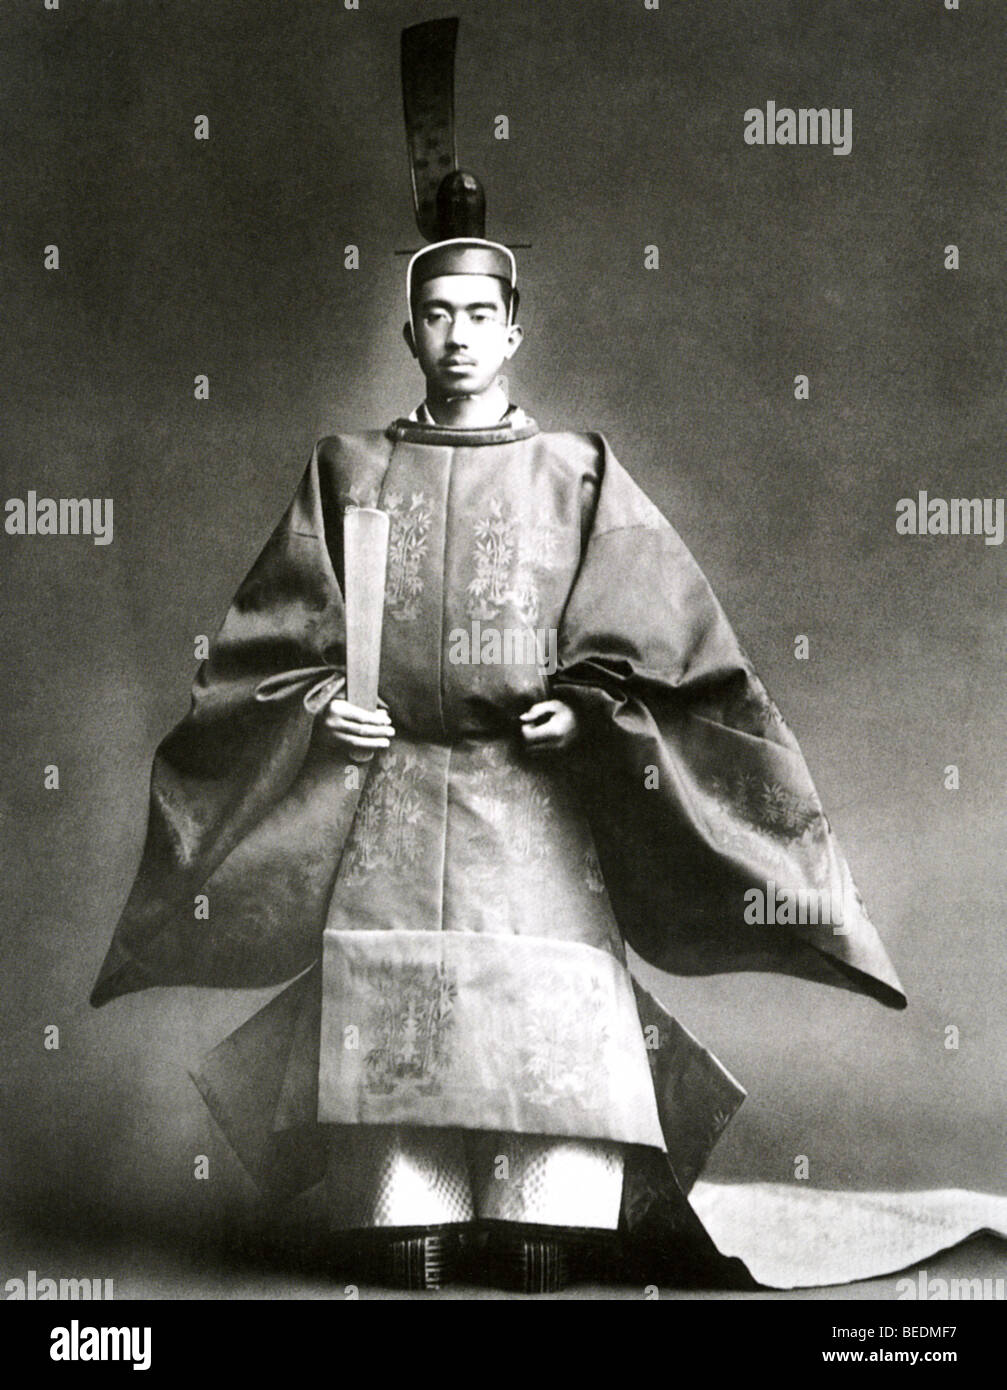 EMPEROR HIROHITO OF JAPAN (1901-1989) here about 1940 - Stock Image